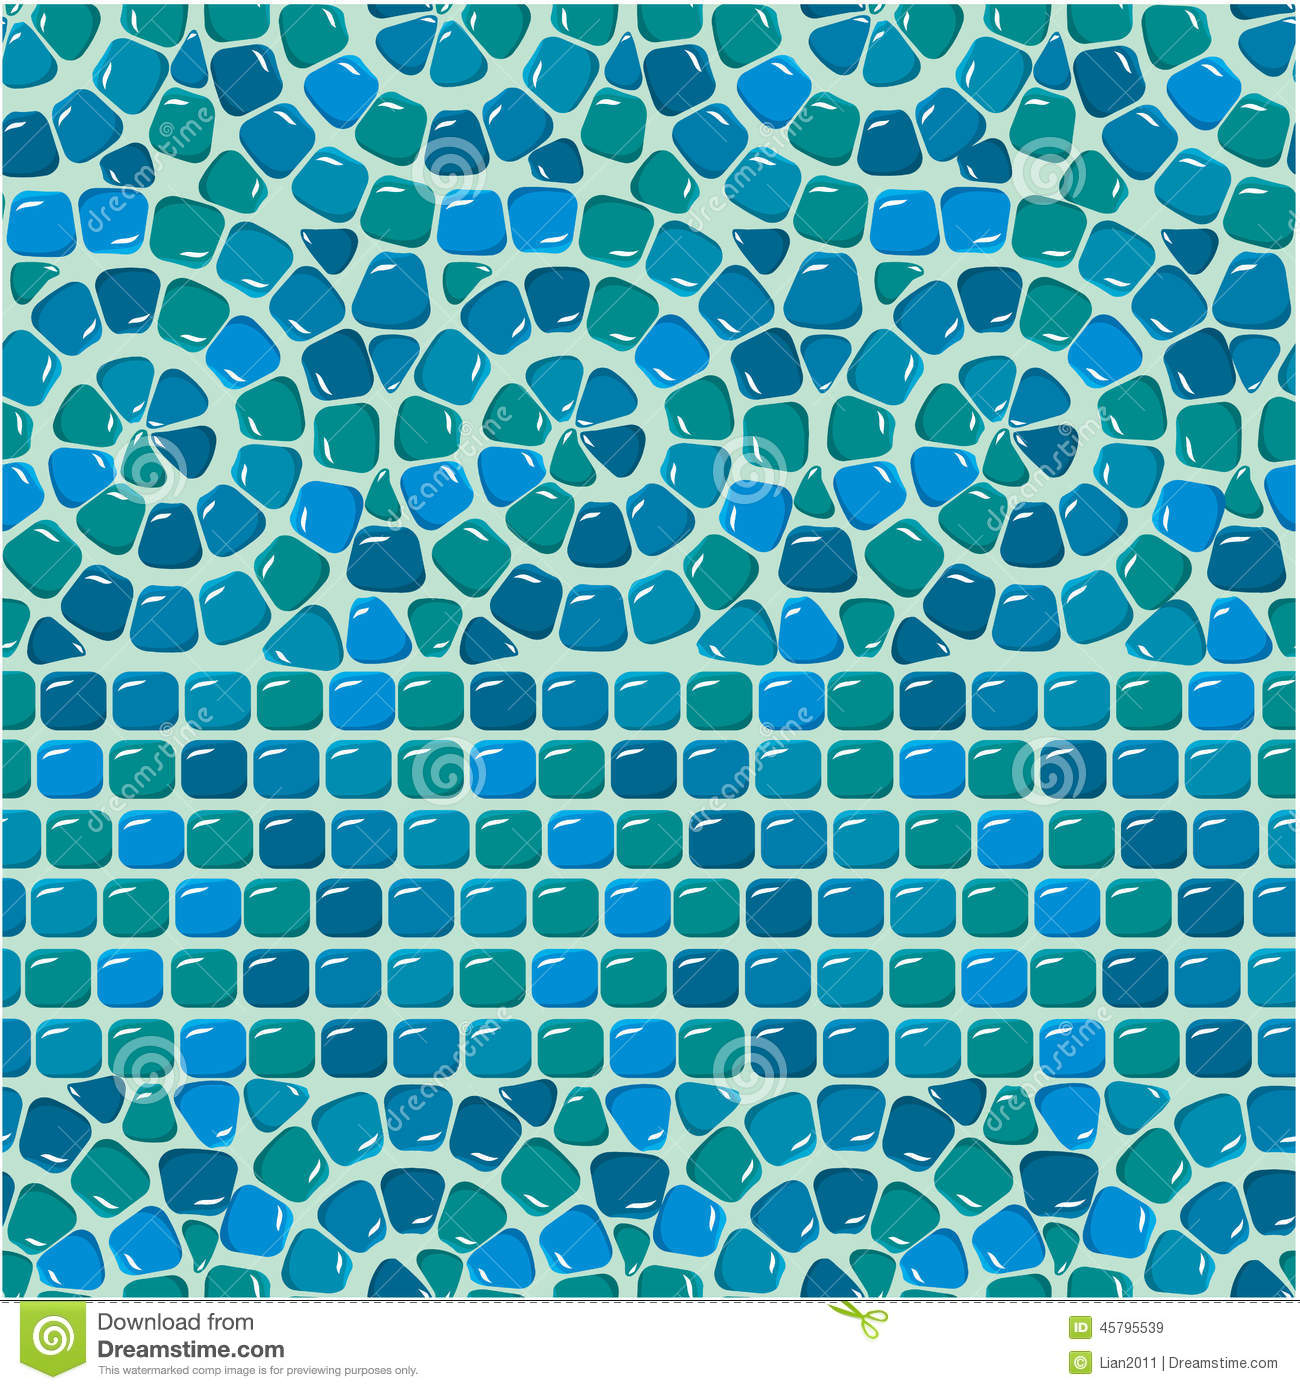 Seamless Mosaic Pattern - Blue Ceramic Tile Stock Vector ...